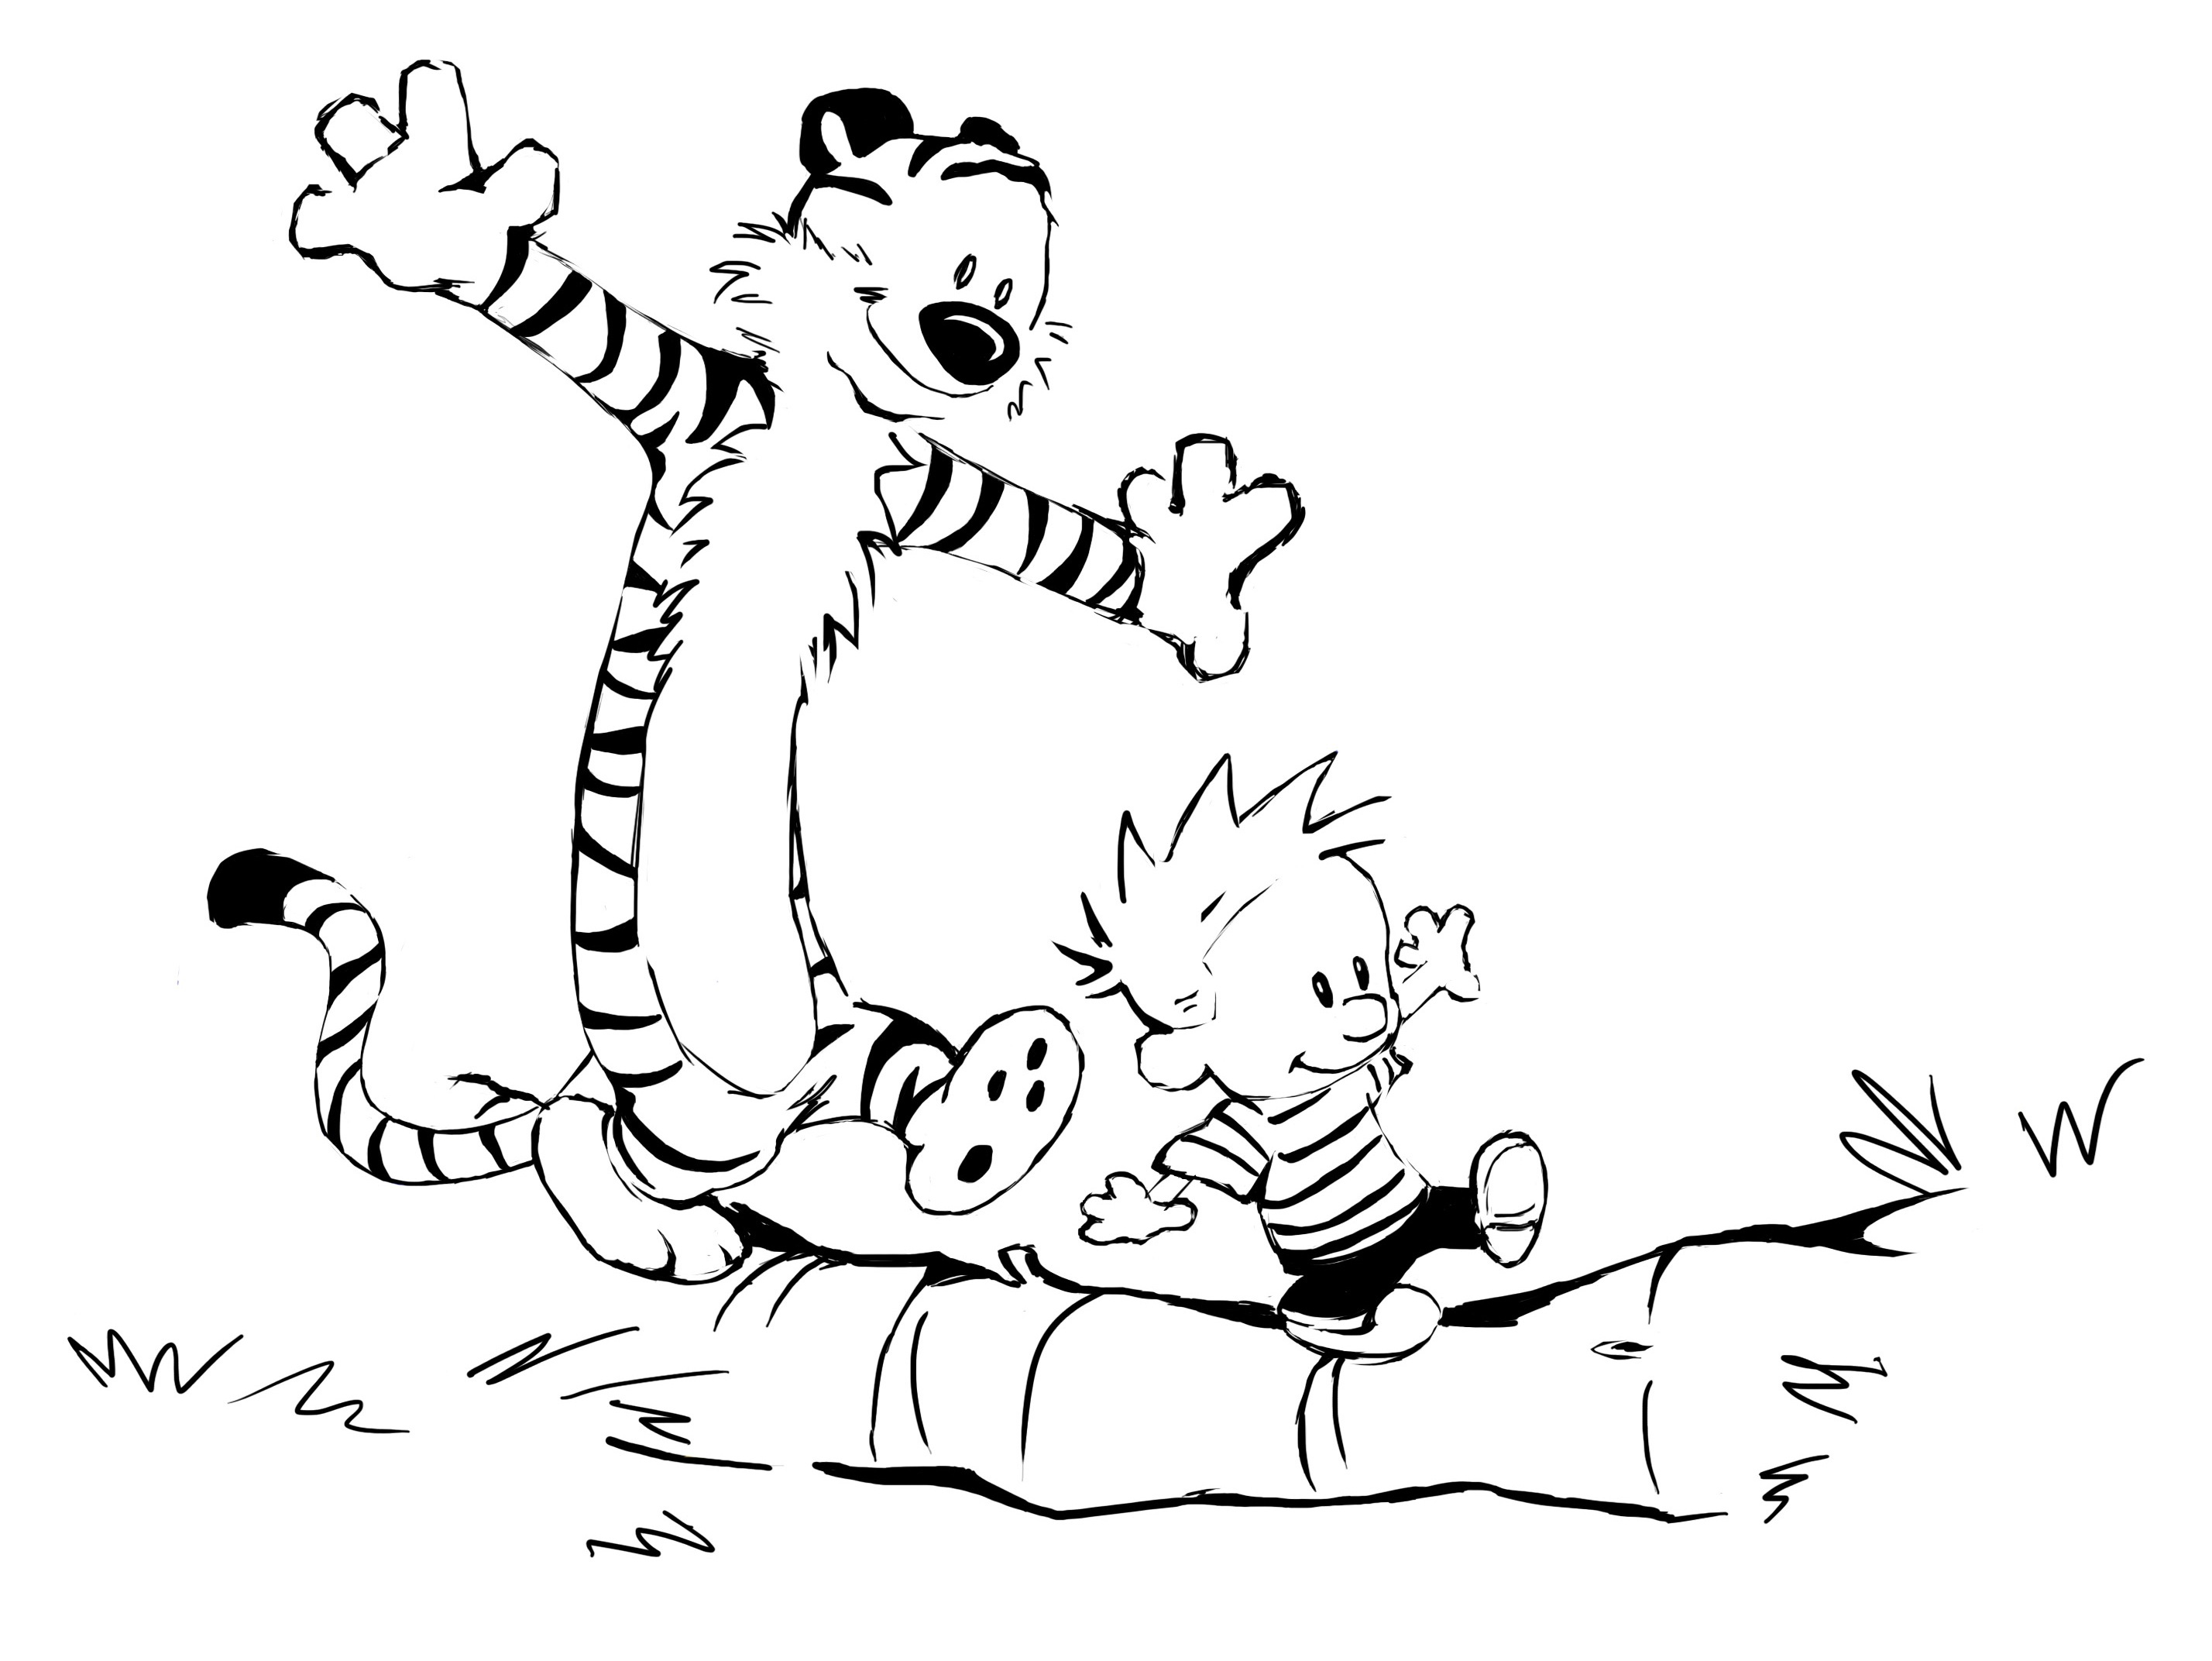 calvin hobbs coloring pages - photo#12